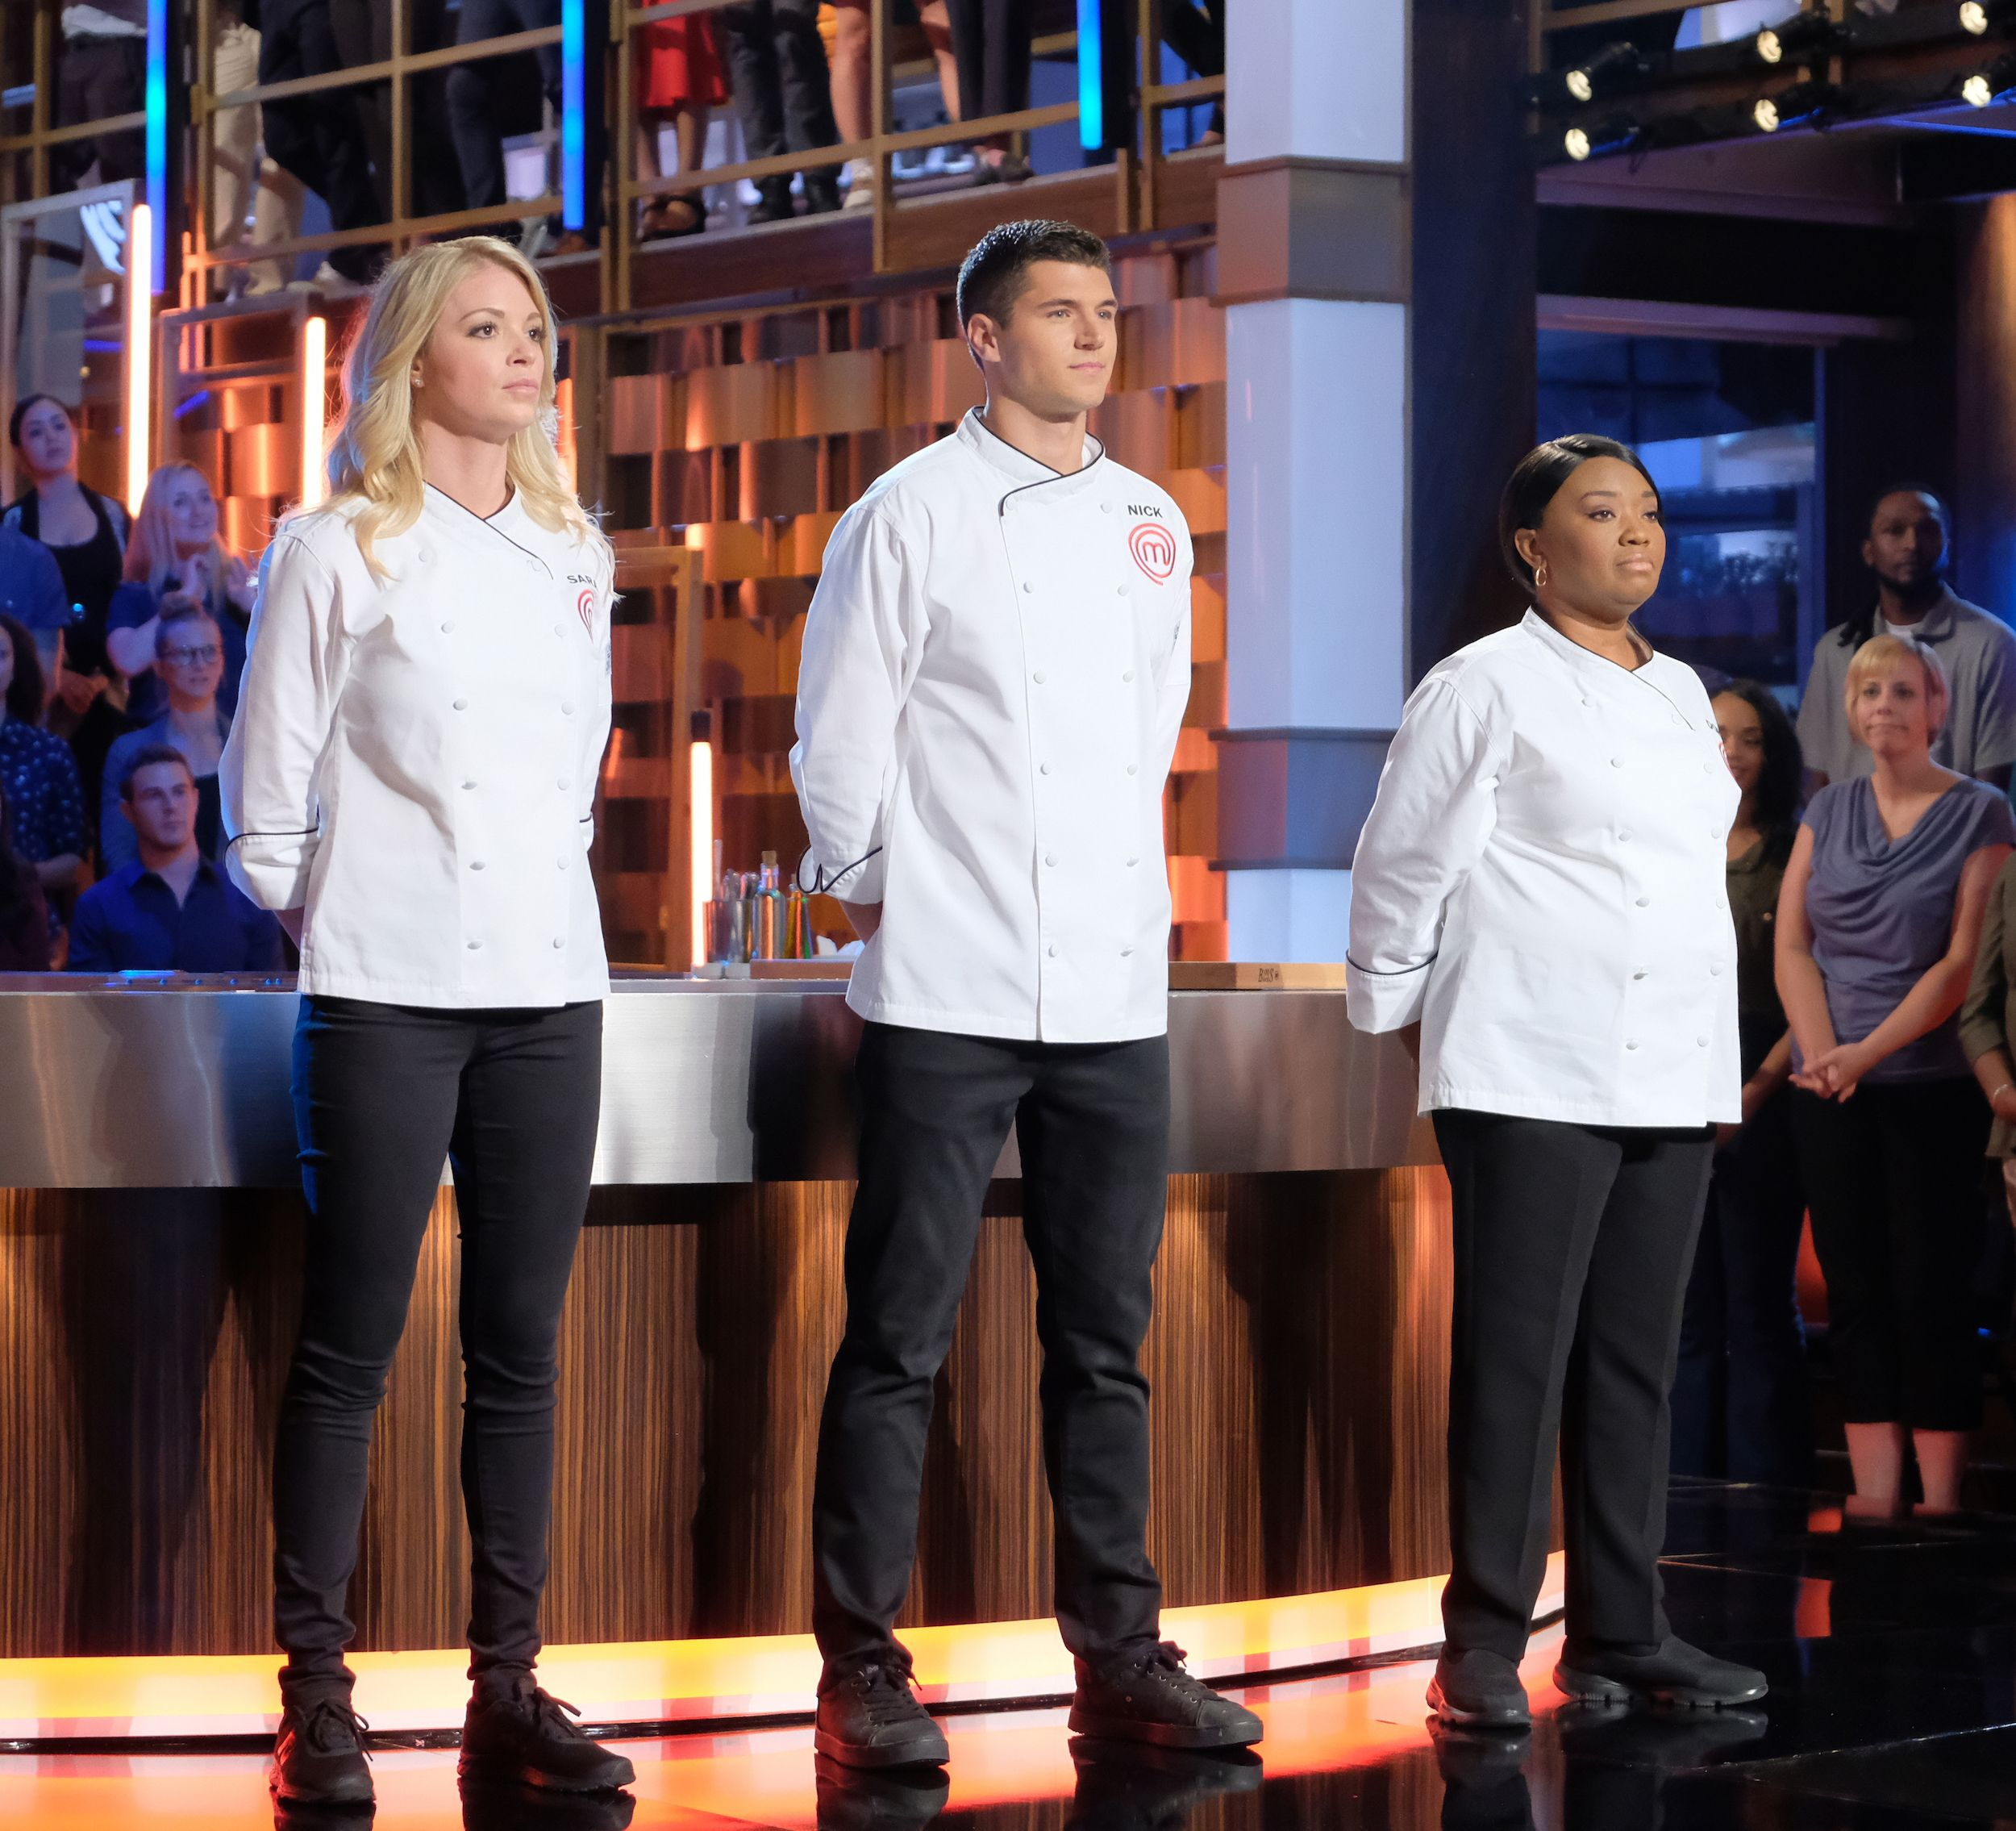 'MasterChef' Contestant Nick DiGiovanni Left School Early To Compete—And Made It All The Way To The Final Three